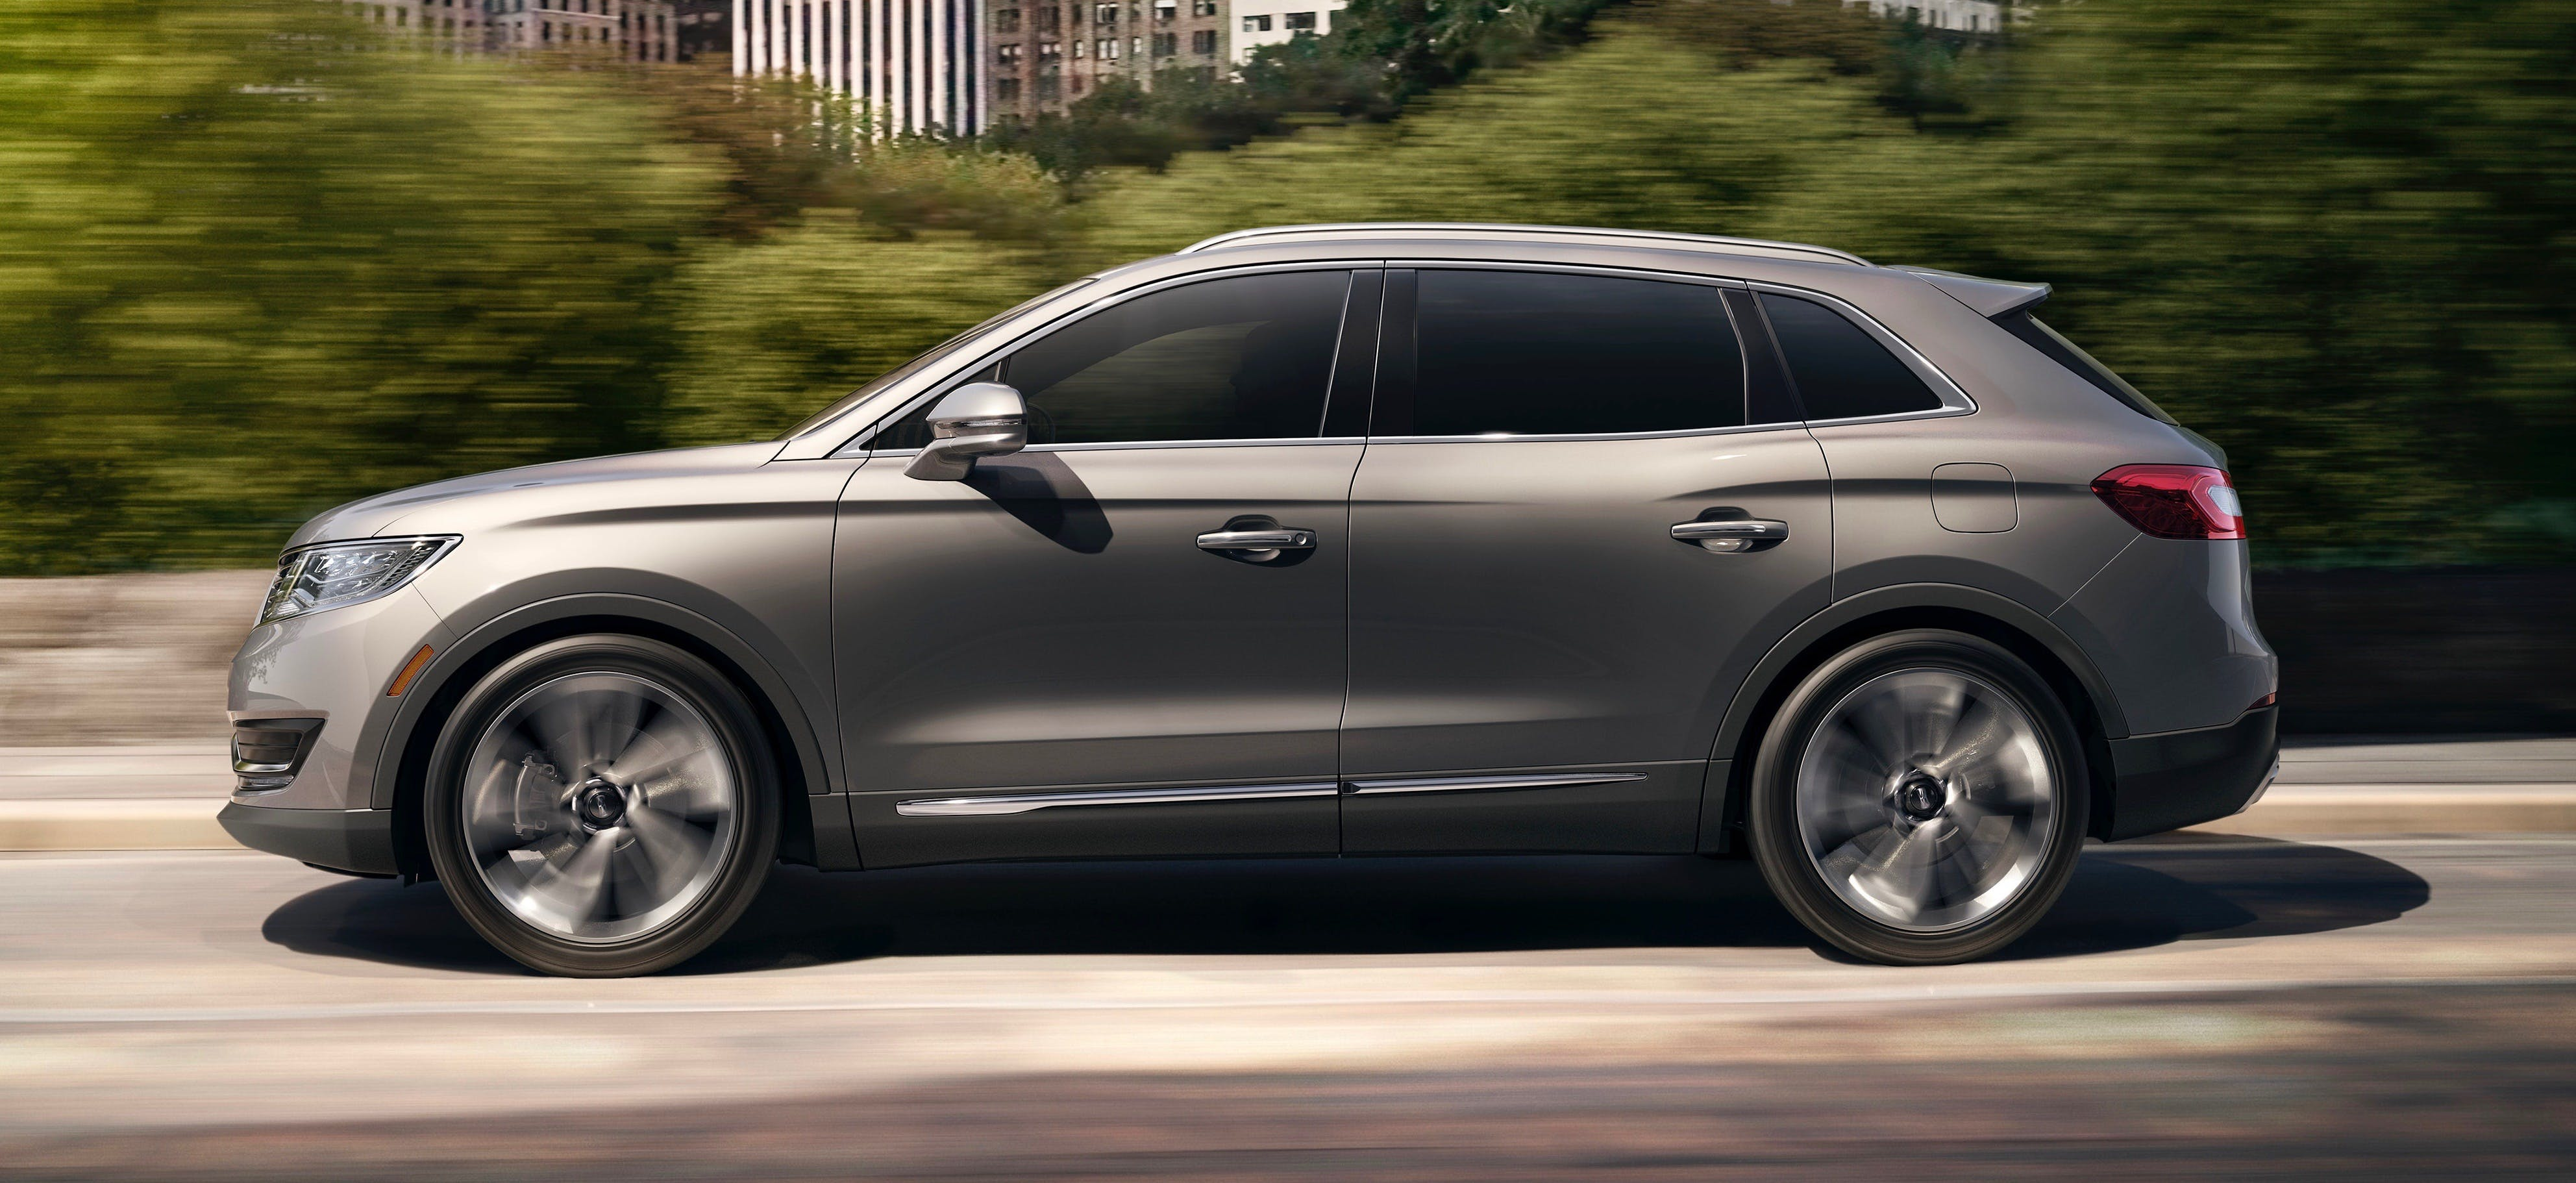 Car Recall: Lincoln MKX for Fire Risk